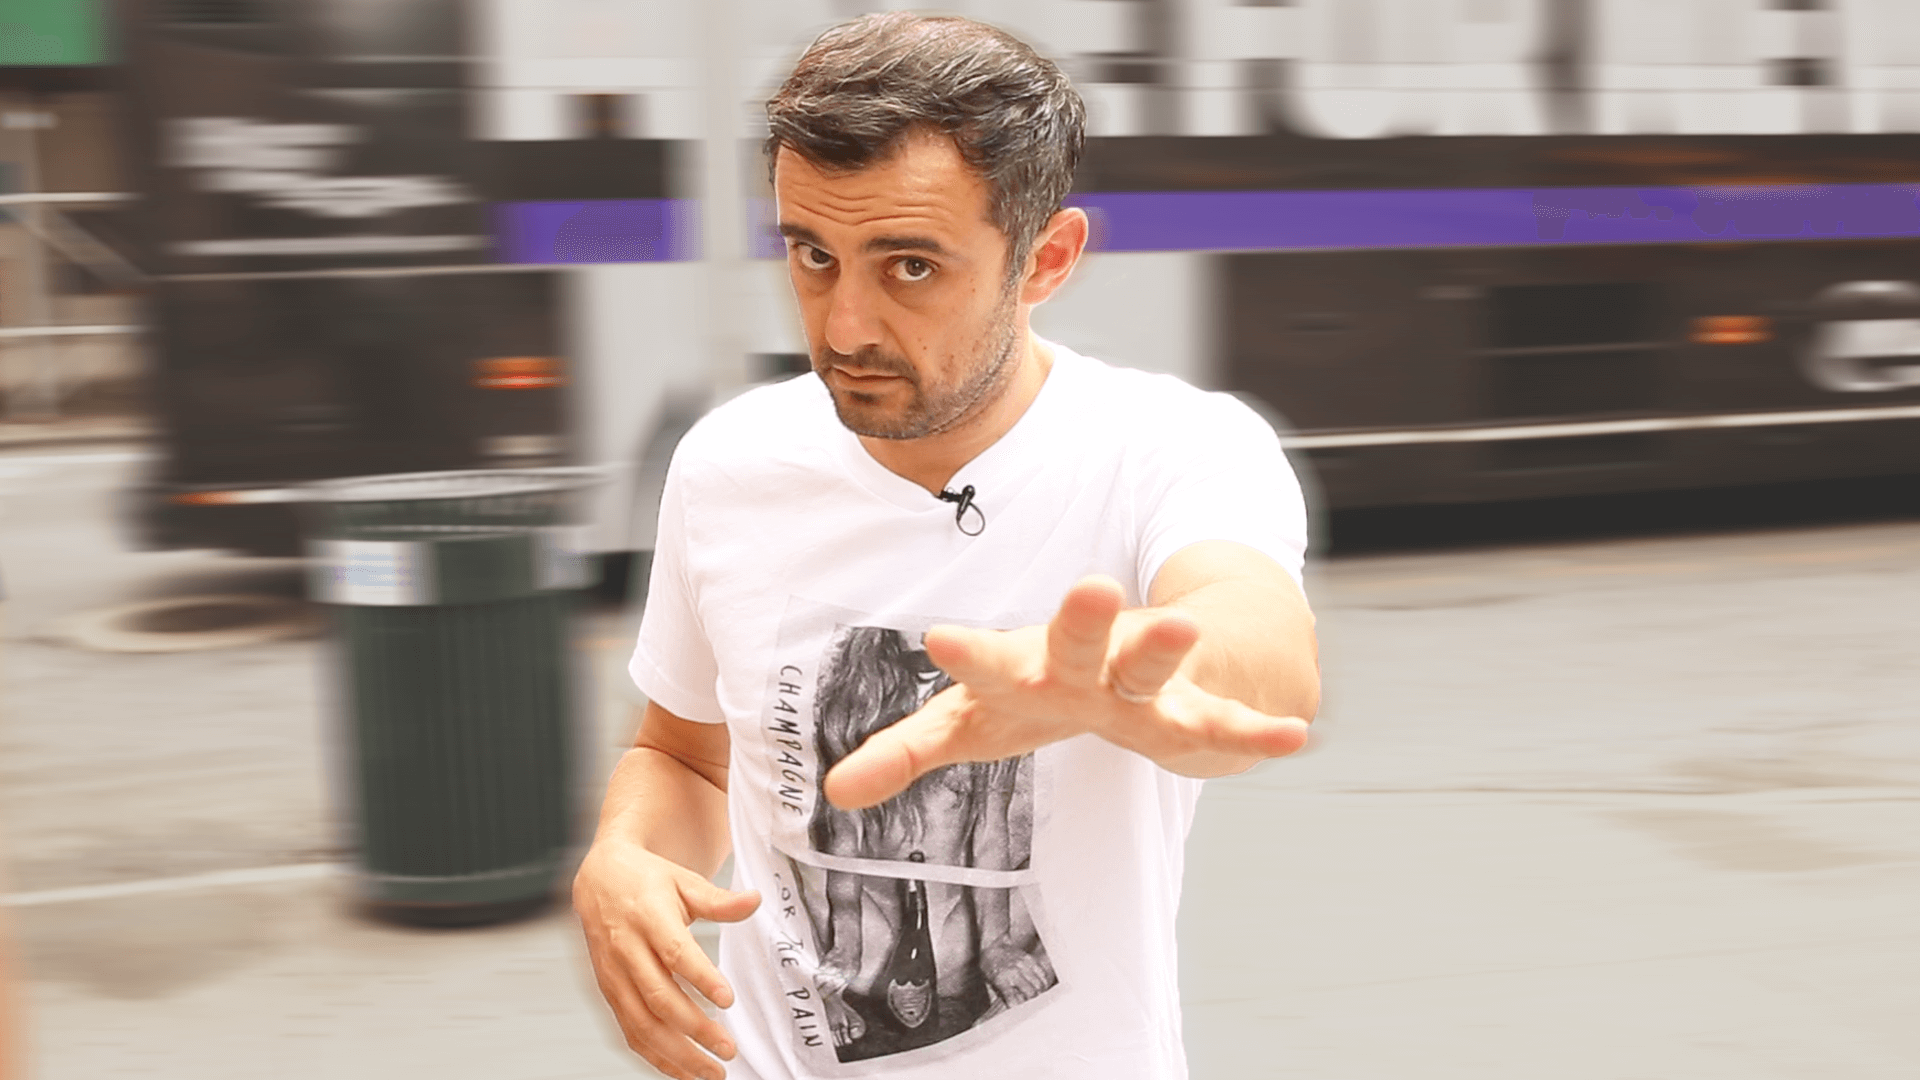 Gary Vaynerchuk in New York City